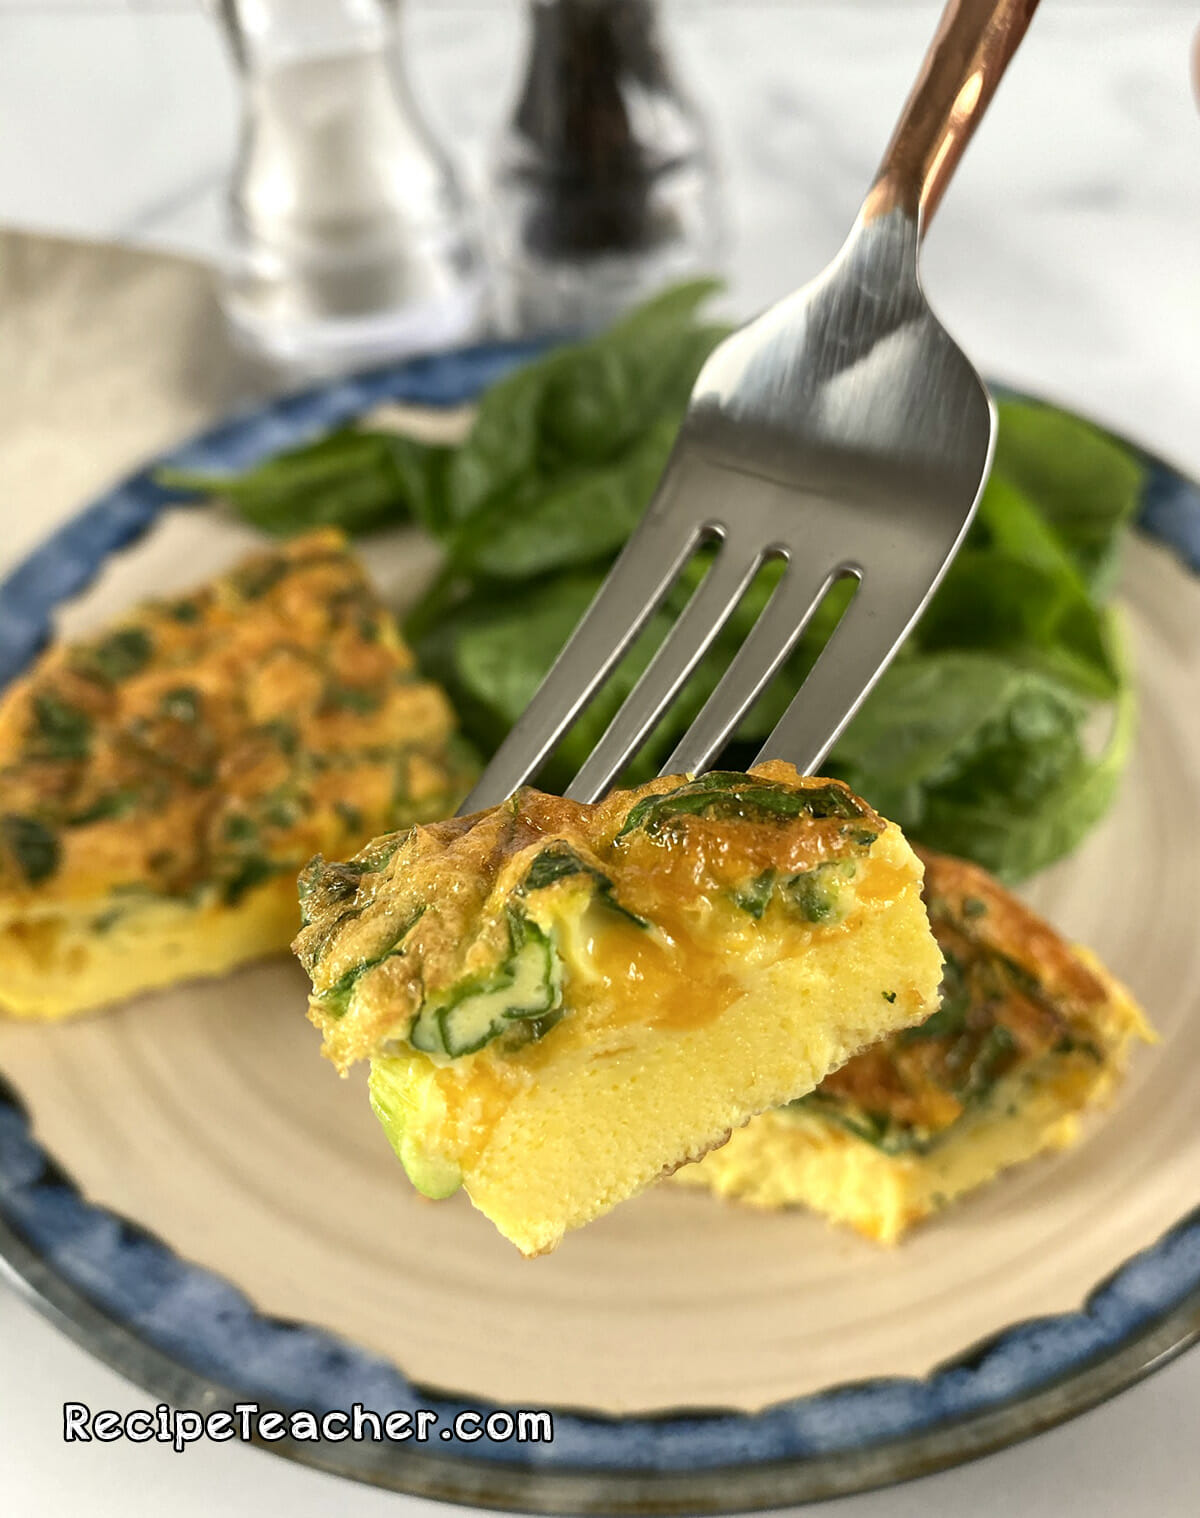 Recipe for air fryer spinach frittata